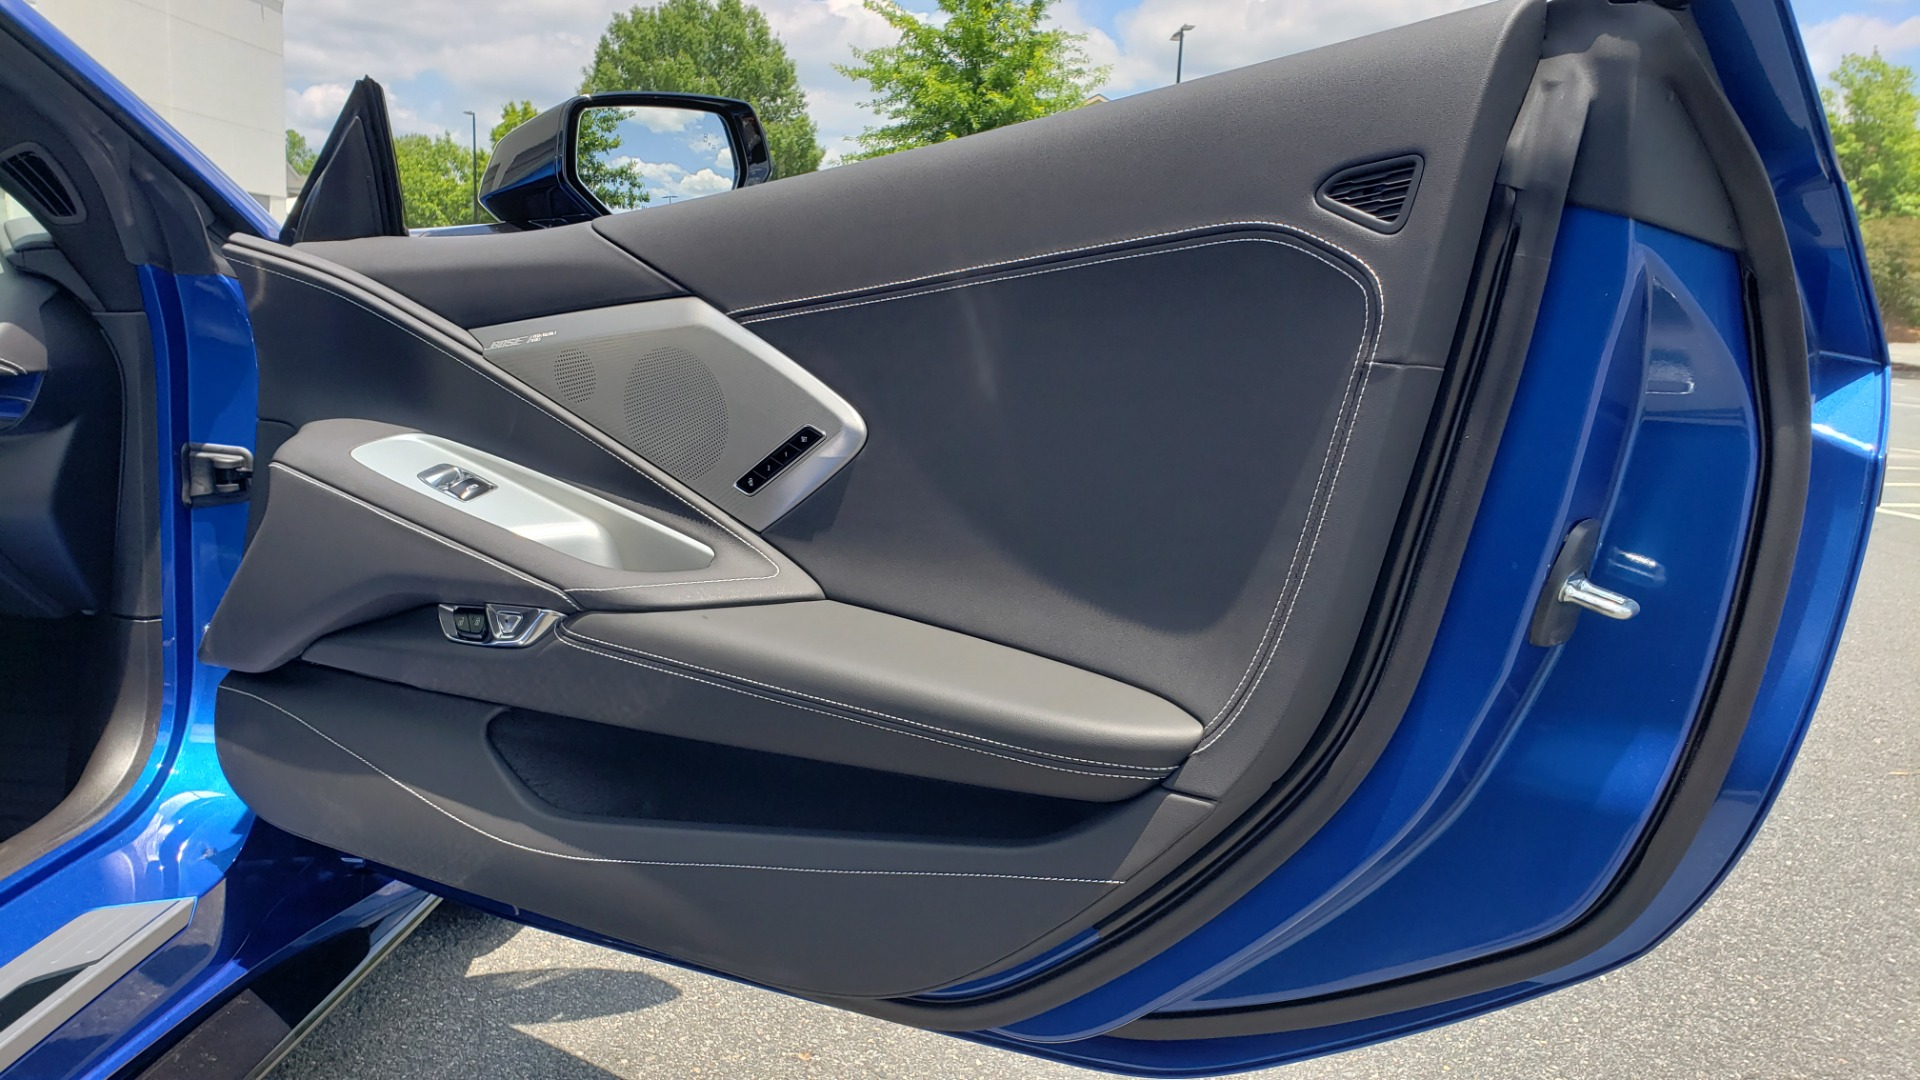 Used 2020 Chevrolet CORVETTE C8 STINGRAY COUPE 2LT / PERF & Z51 PKG / NAV / BOSE / 8-SPD AUTO / REARVIEW for sale Sold at Formula Imports in Charlotte NC 28227 35